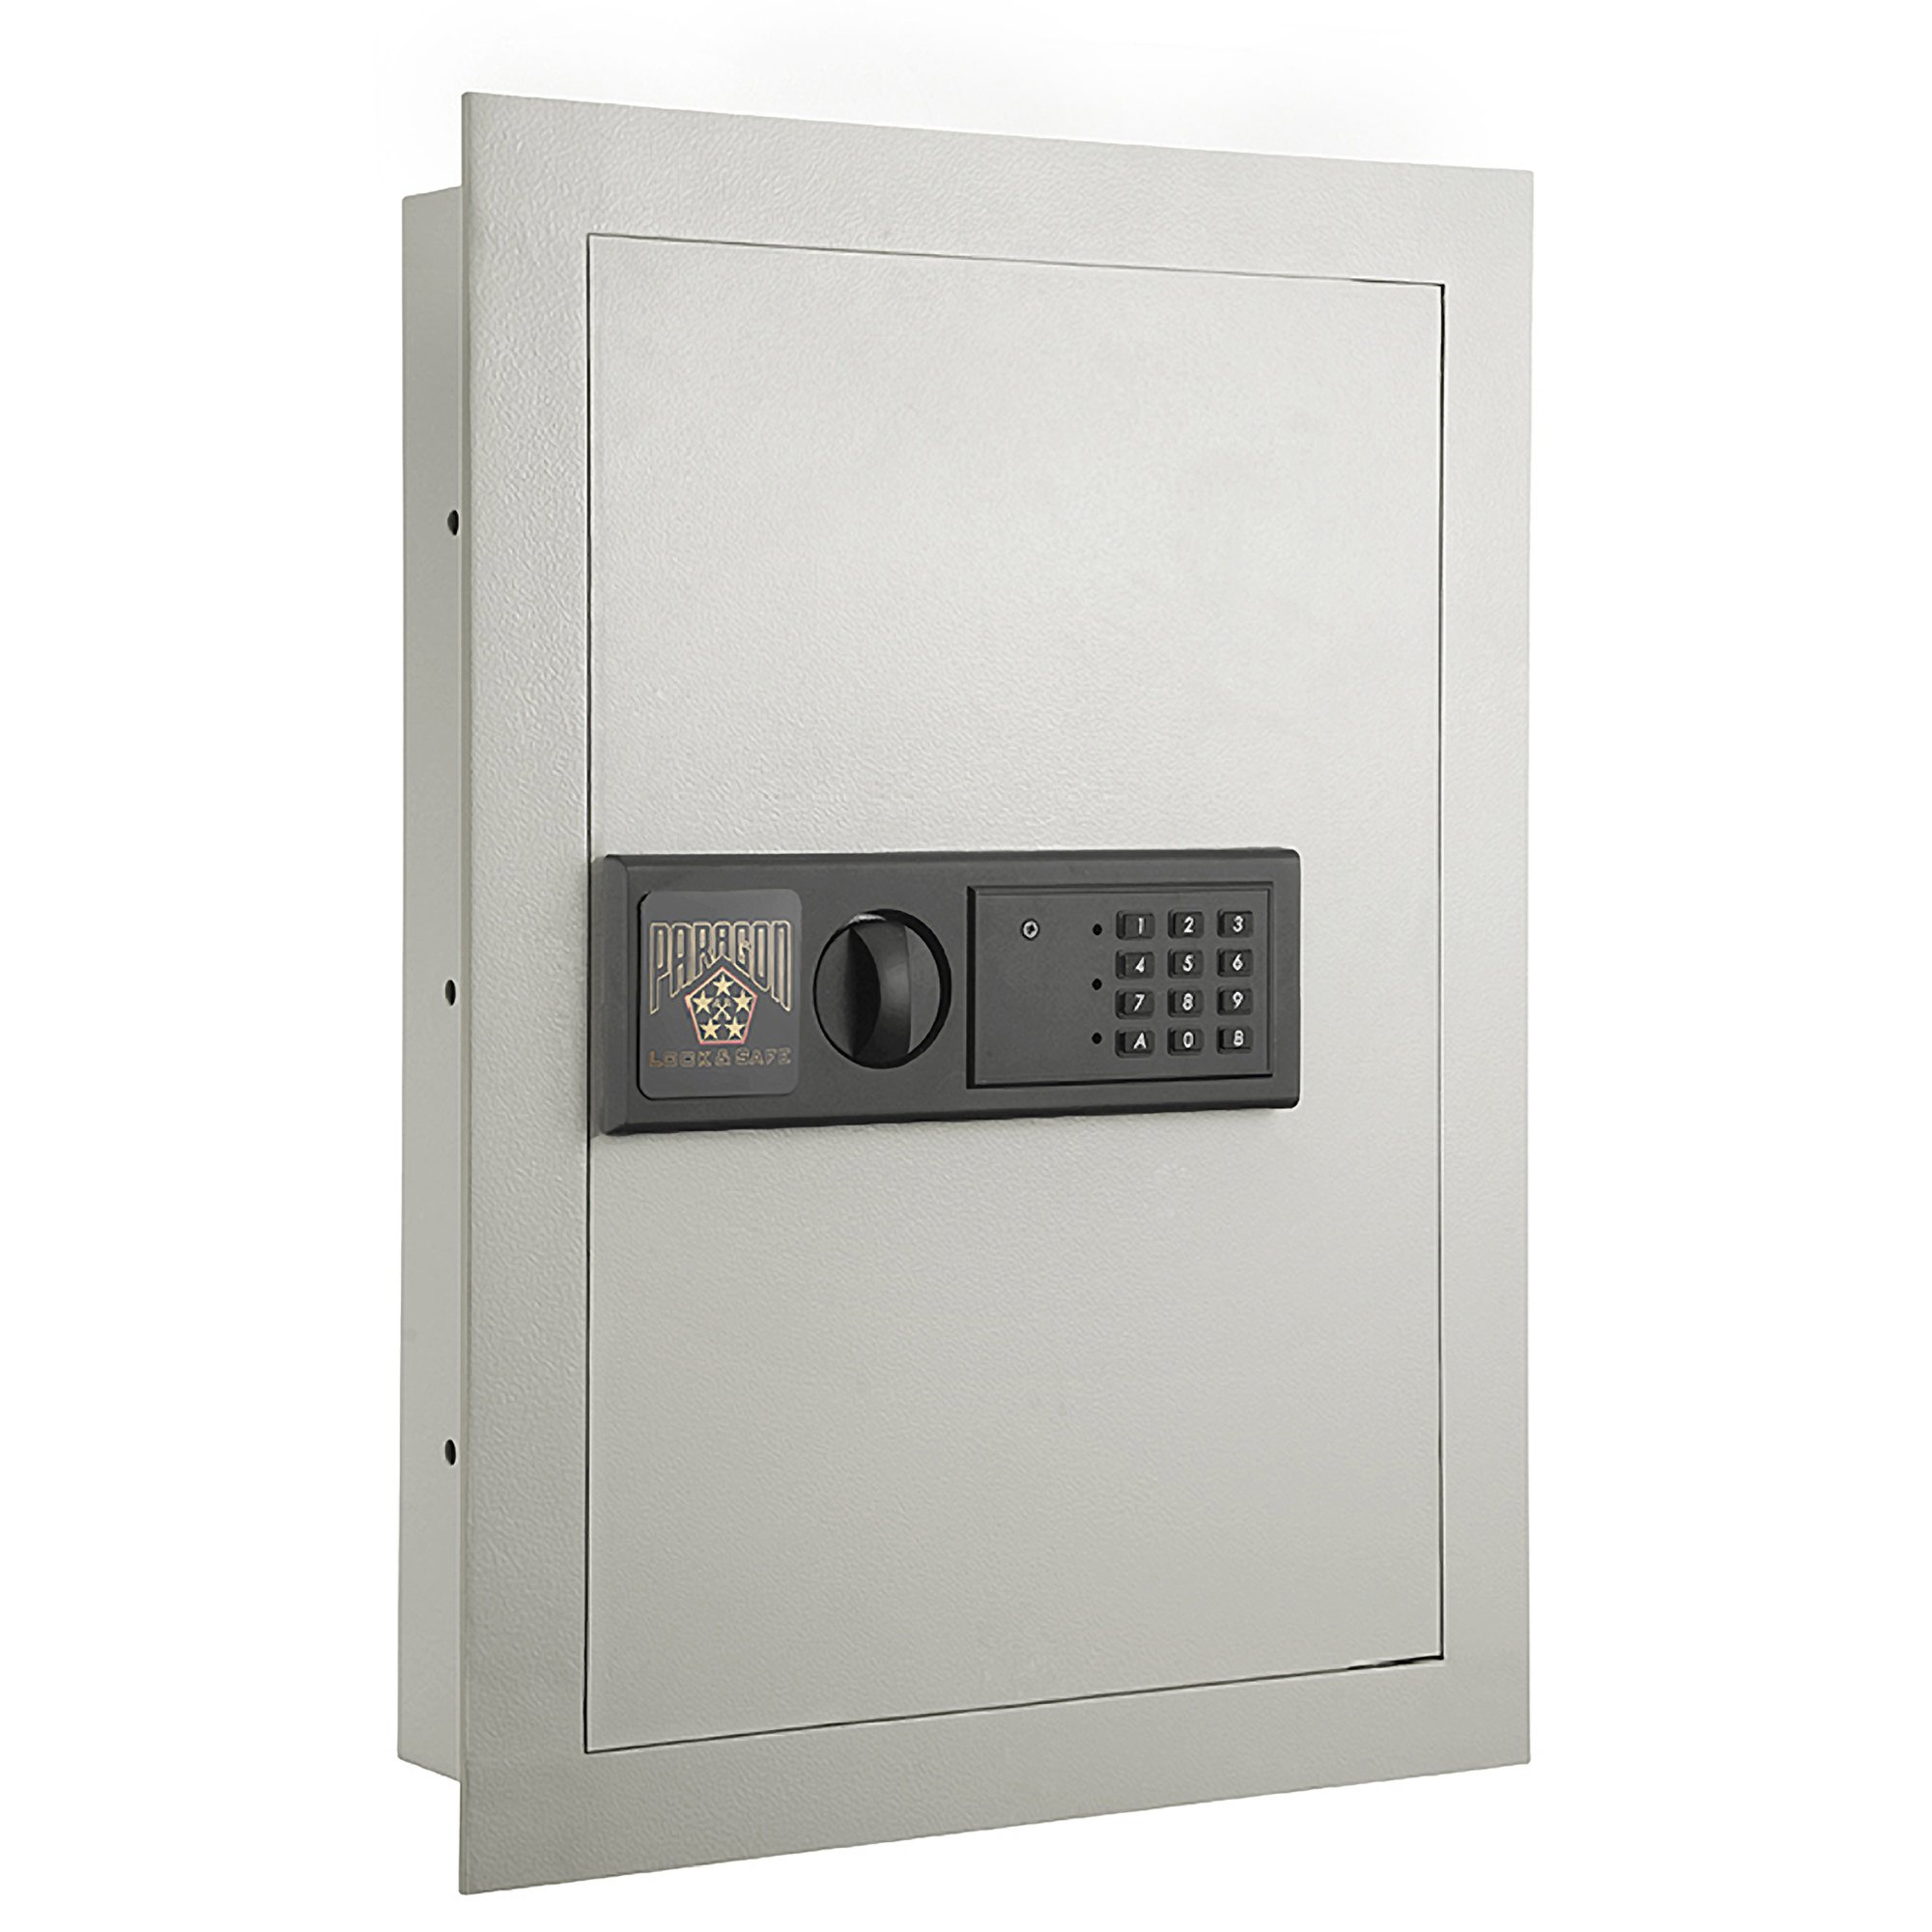 7750 Electronic Wall Safe Hidden Large Safes Jewelry Secure-Paragon Lock & Safe by Paragon Lock and Safe